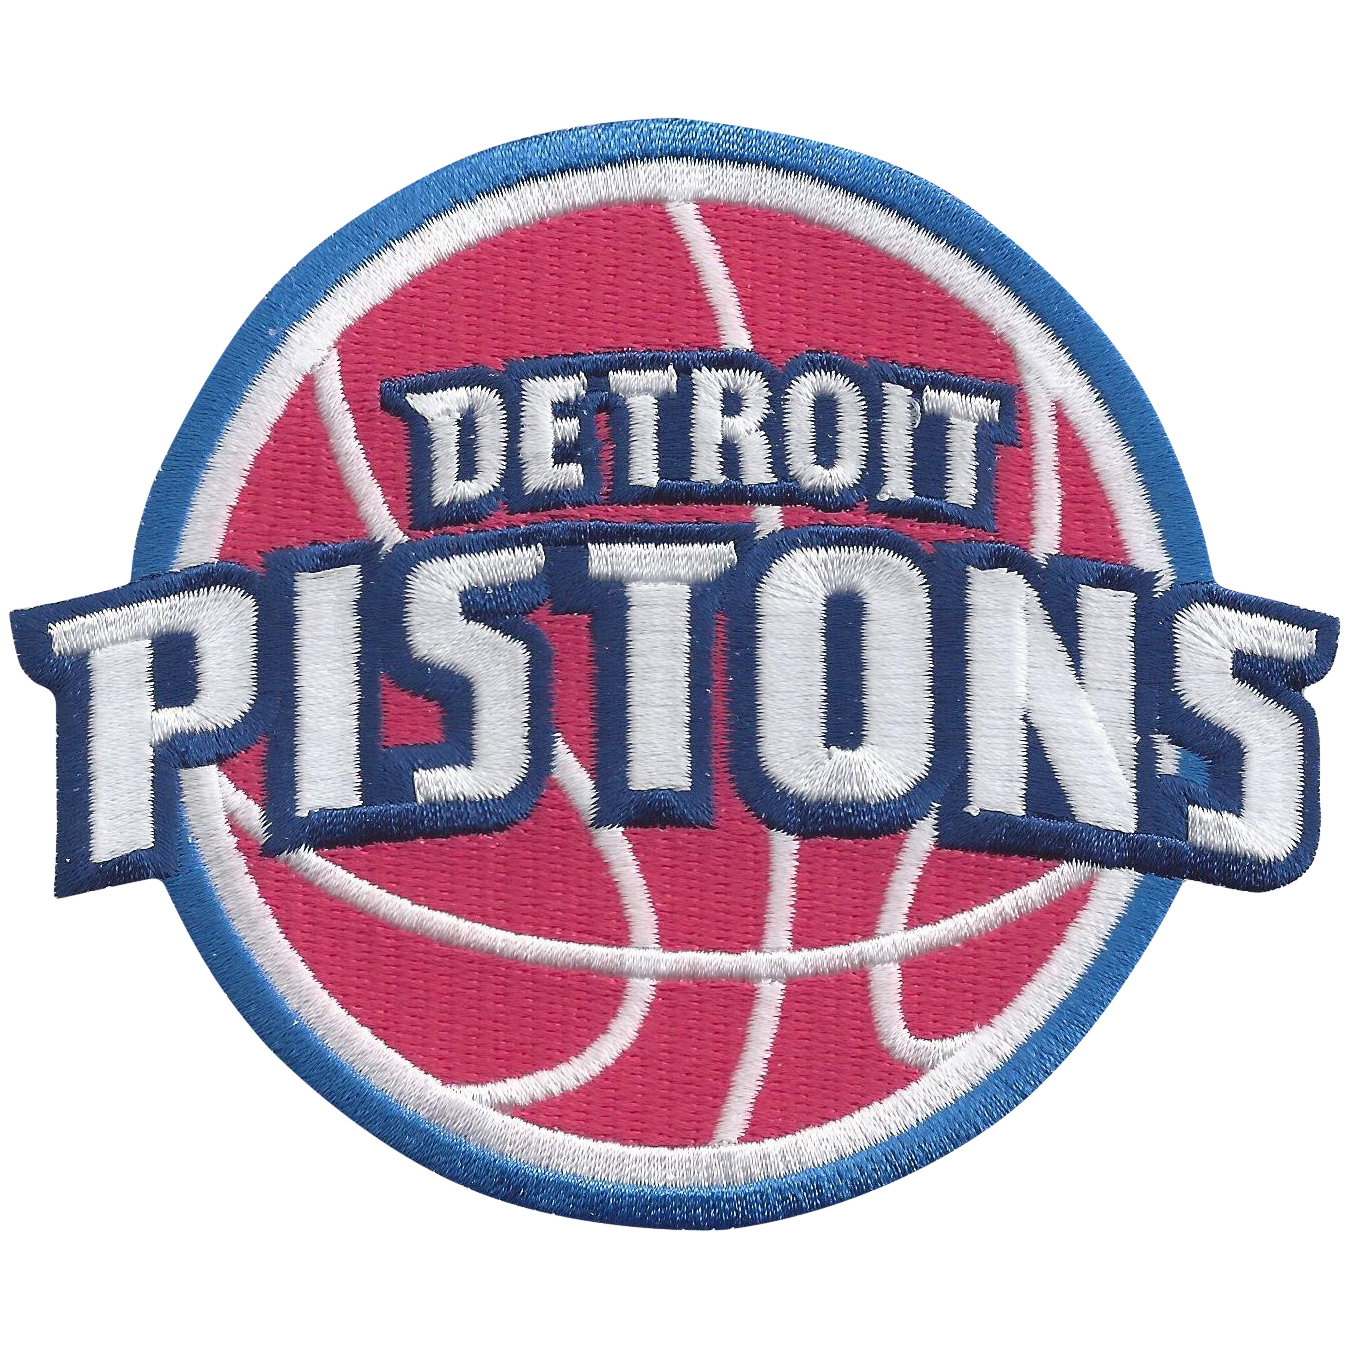 Detroit Pistons Embroidered Team Patch - No Size